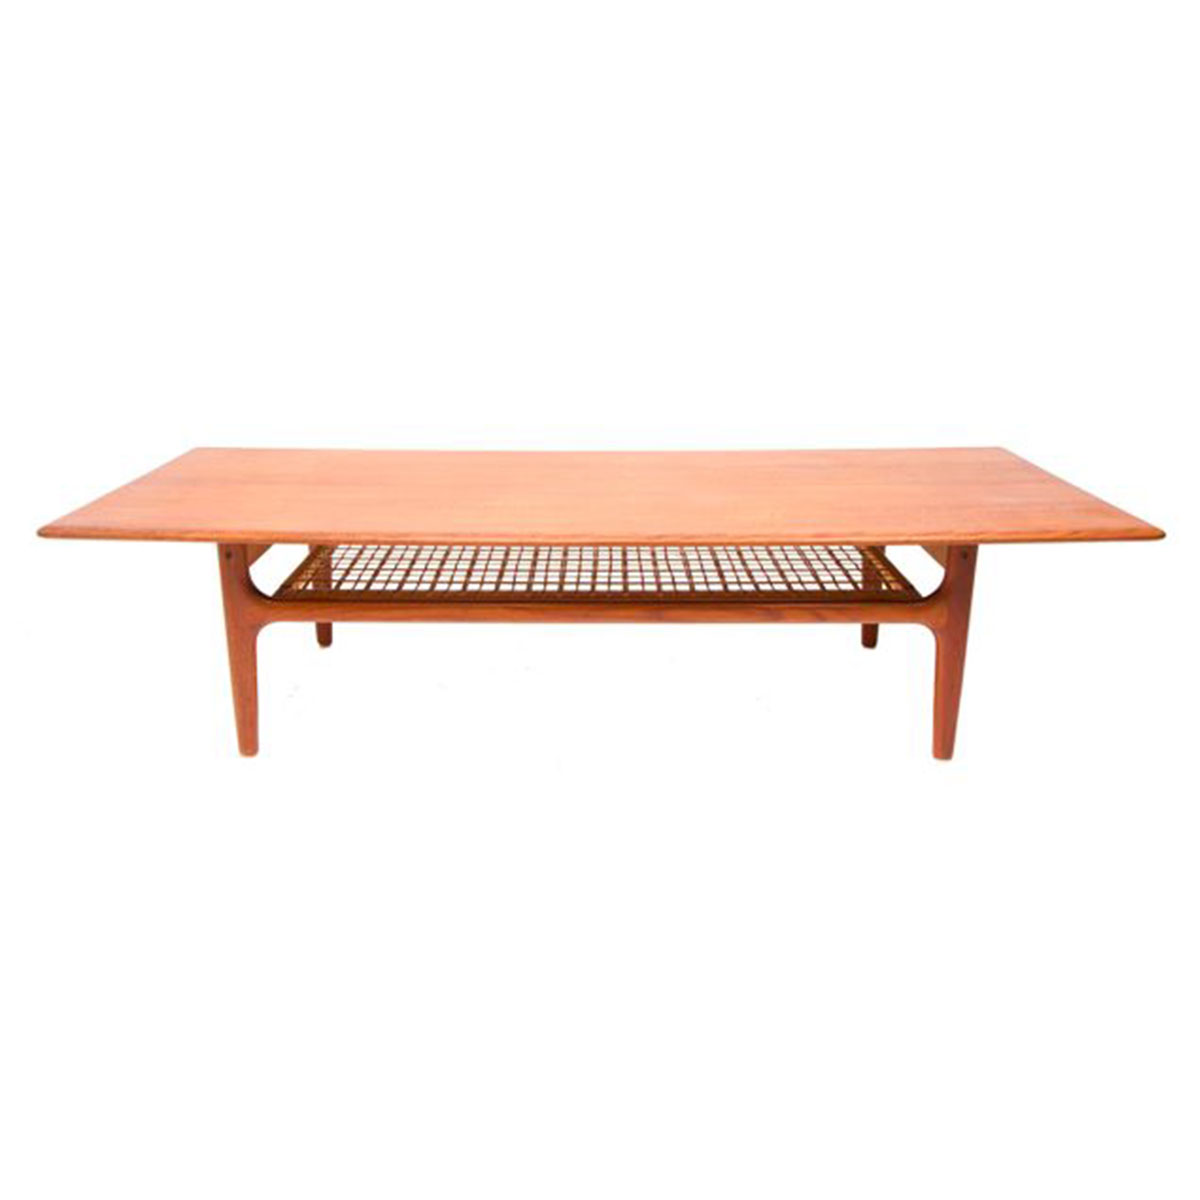 Fabulous Large Scale Teak Coffee Table with Cane Shelf